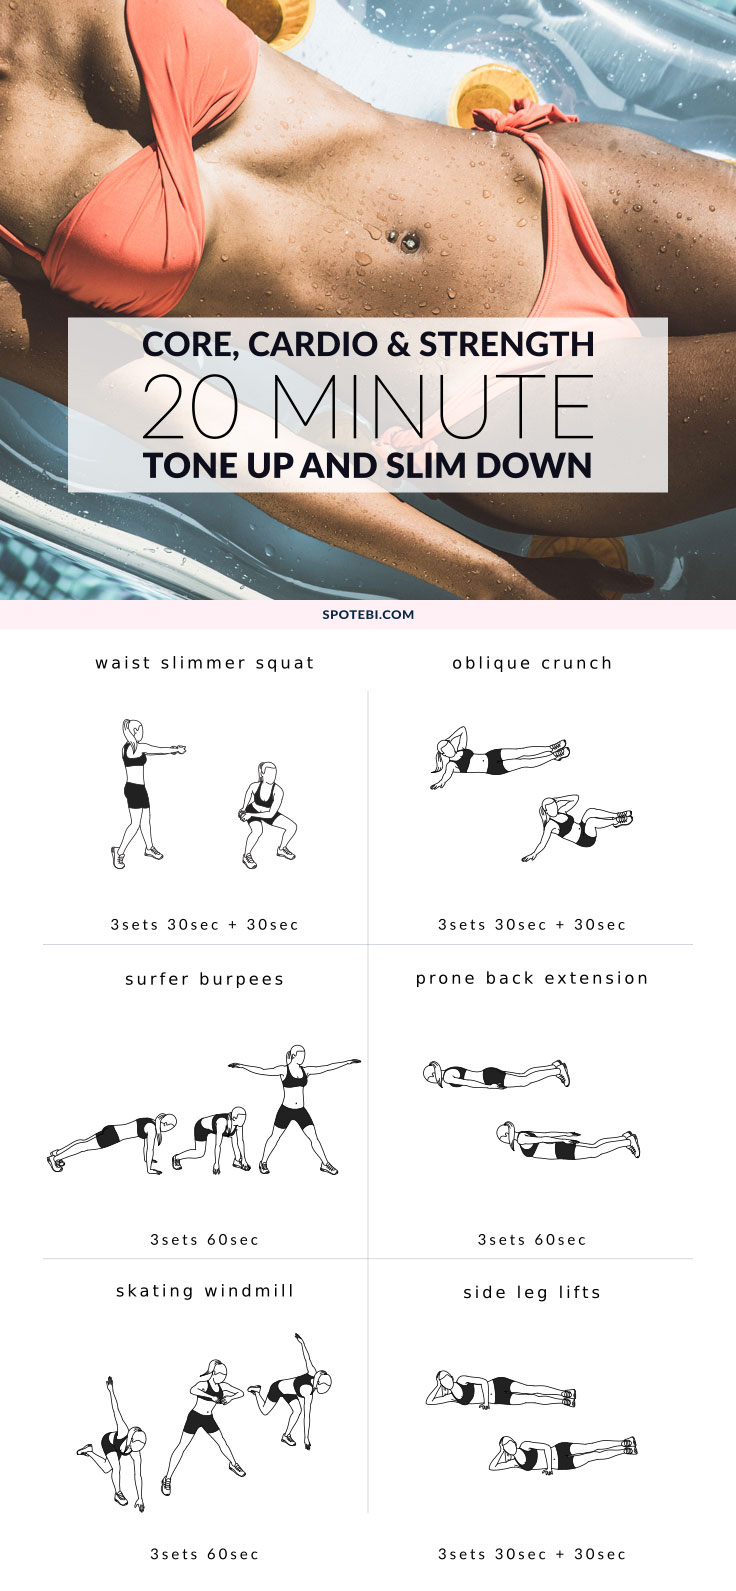 Make every minute count with this 20 Minute Workout! A quick routine designed to be fun, effective, and best of all, help you remove body fat! Get that flat tummy you always wanted, and improve your strength and cardiovascular endurance in just a few minutes a day! https://www.spotebi.com/workout-routines/20-minute-workout-core-cardio-strength/